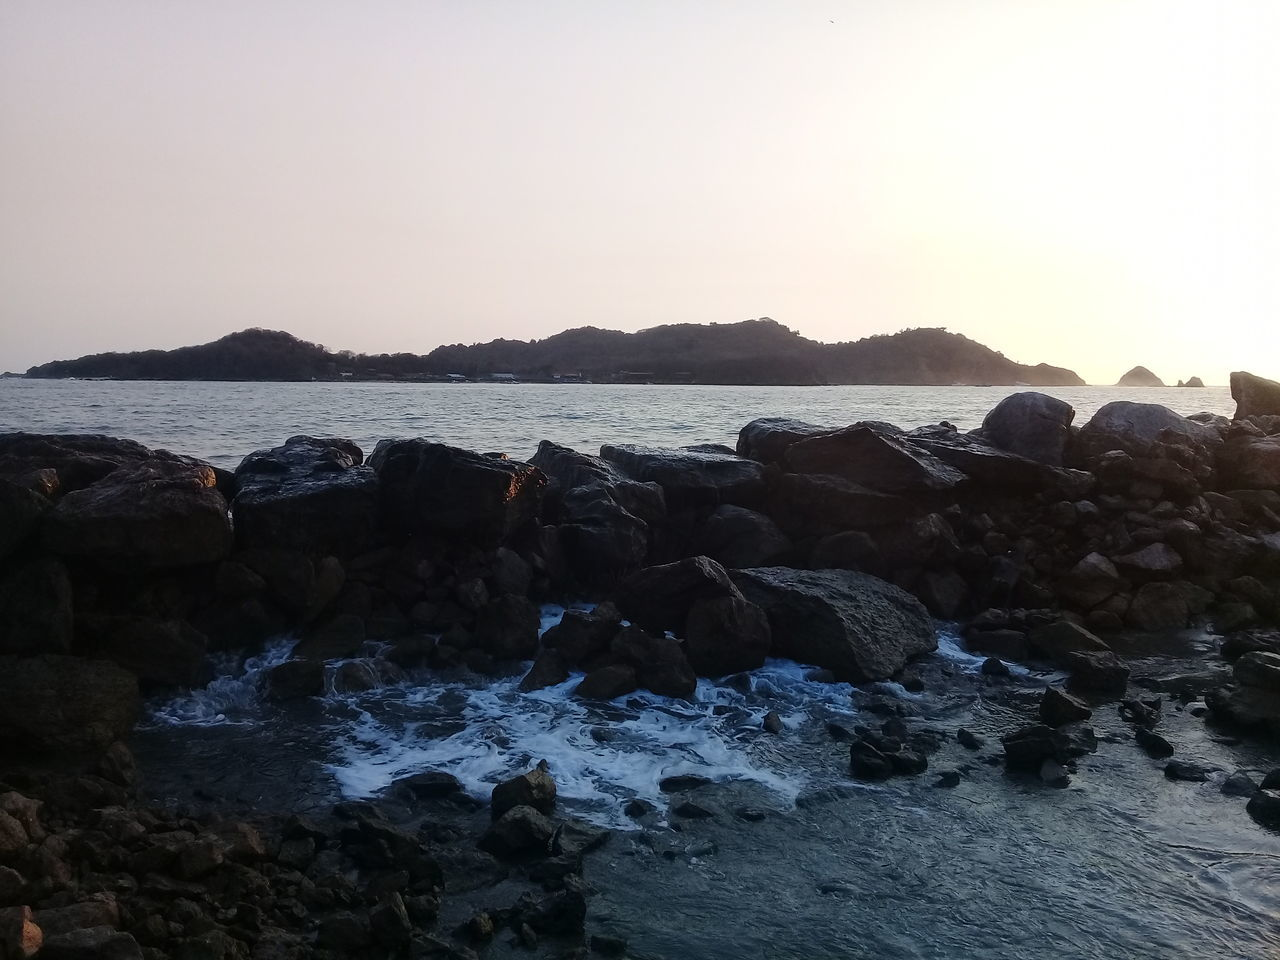 sea, nature, rock - object, water, beauty in nature, clear sky, scenics, tranquil scene, beach, tranquility, outdoors, pebble, no people, sky, pebble beach, horizon over water, day